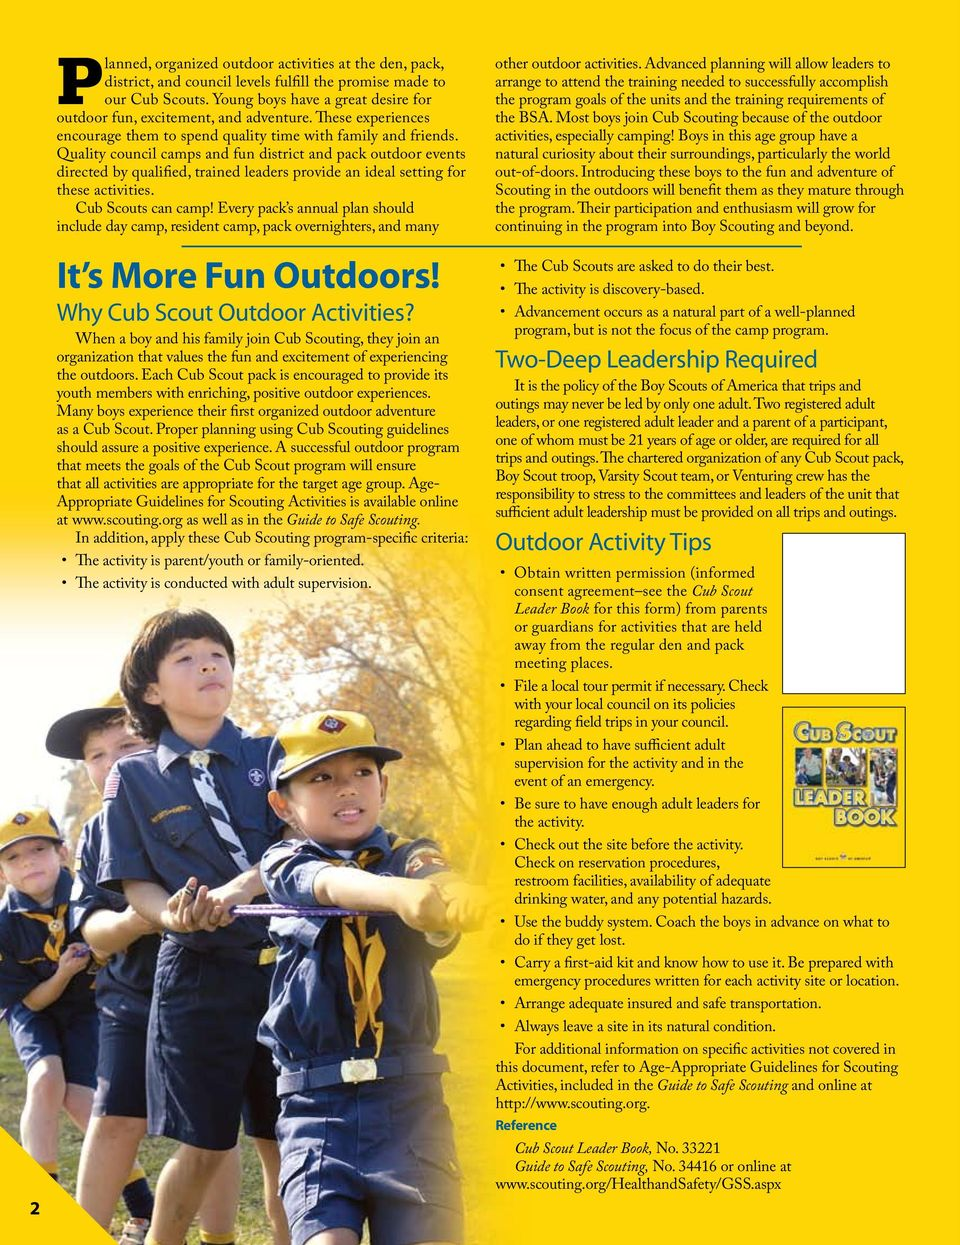 Quality council camps and fun district and pack outdoor events directed by qualified, trained leaders provide an ideal setting for these activities. Cub Scouts can camp!